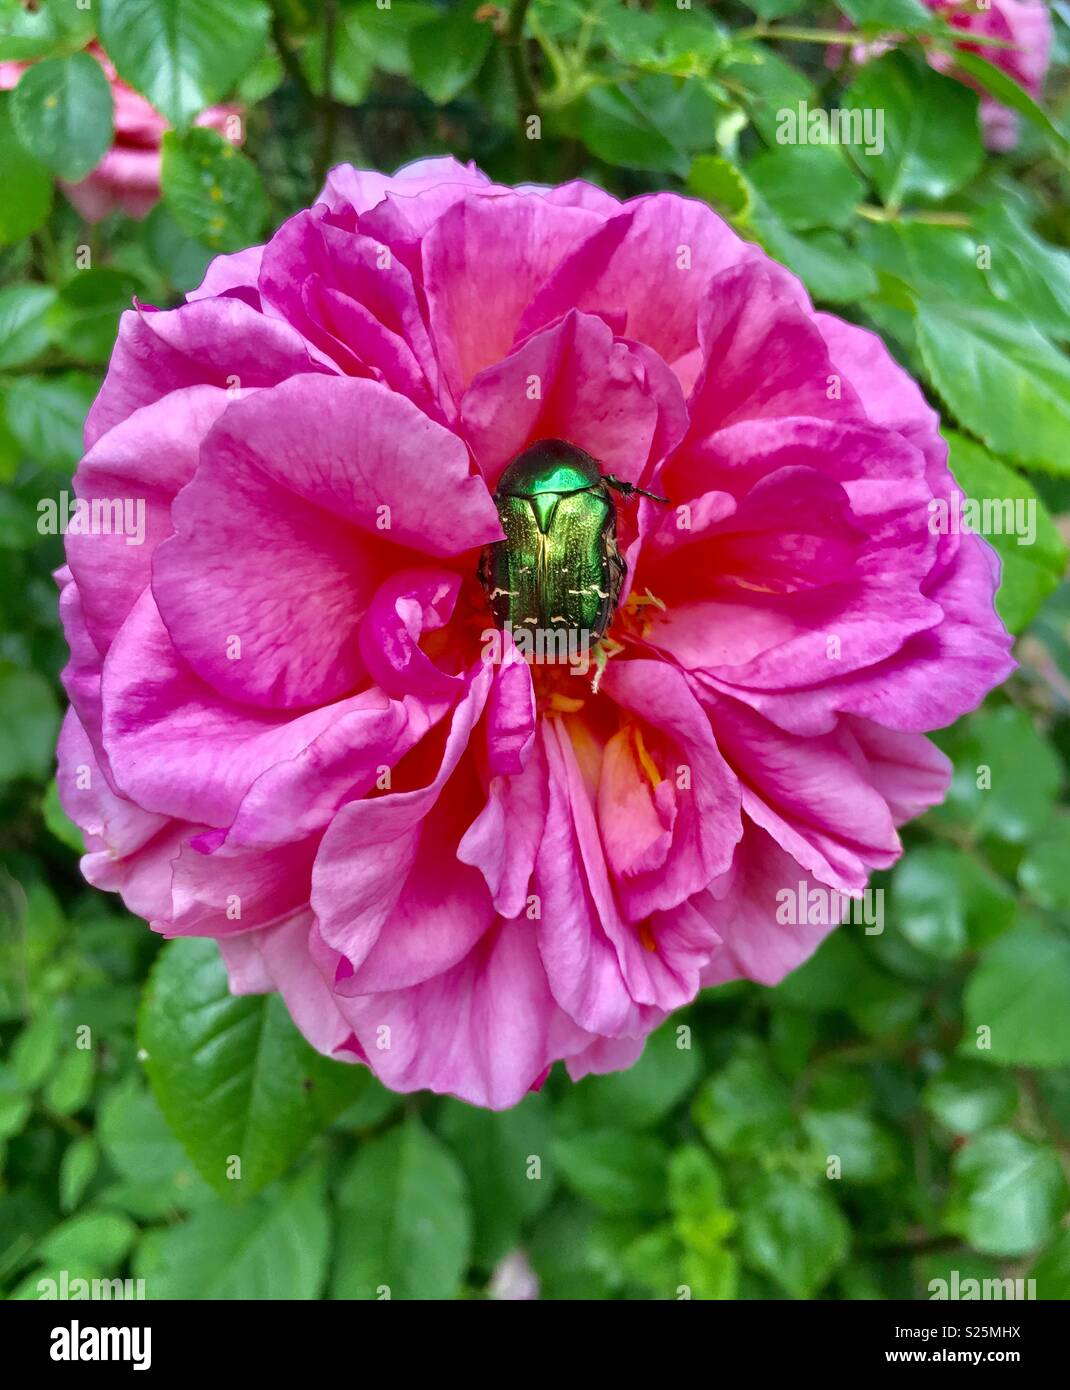 Green Figeater beetle on a pink rose - Stock Image